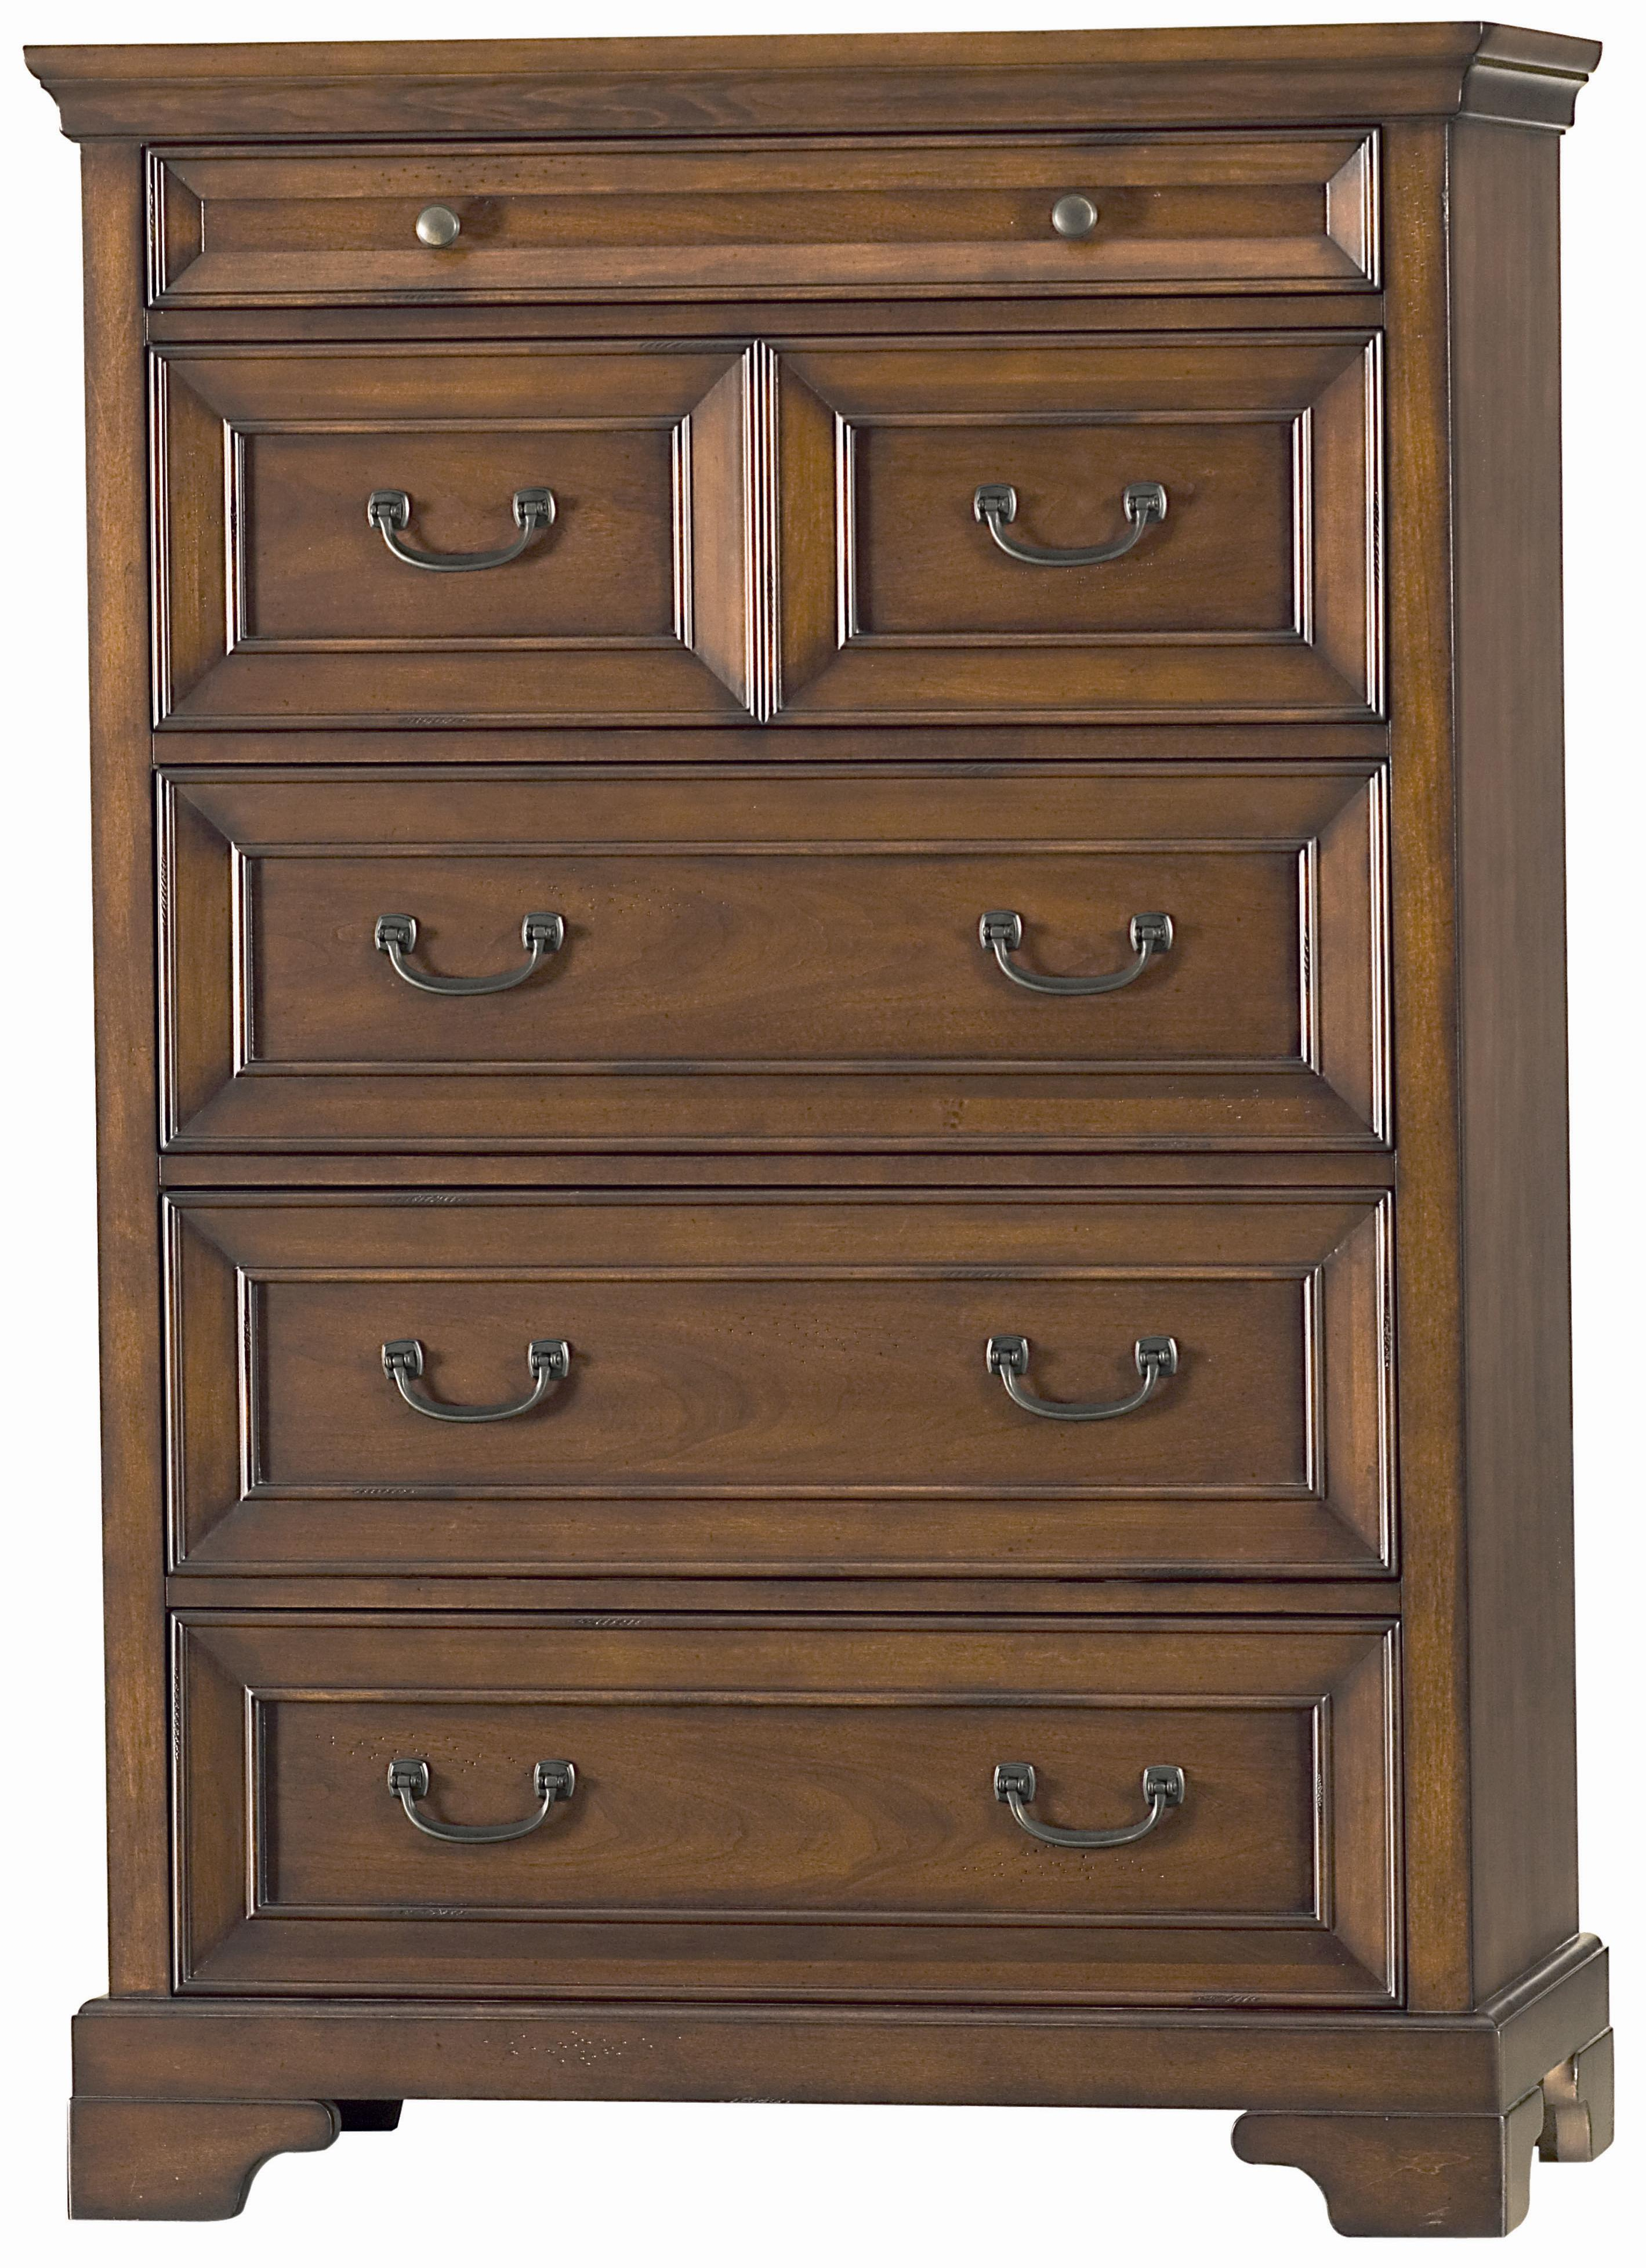 Aspenhome Richmond Chest - Item Number: I40-456